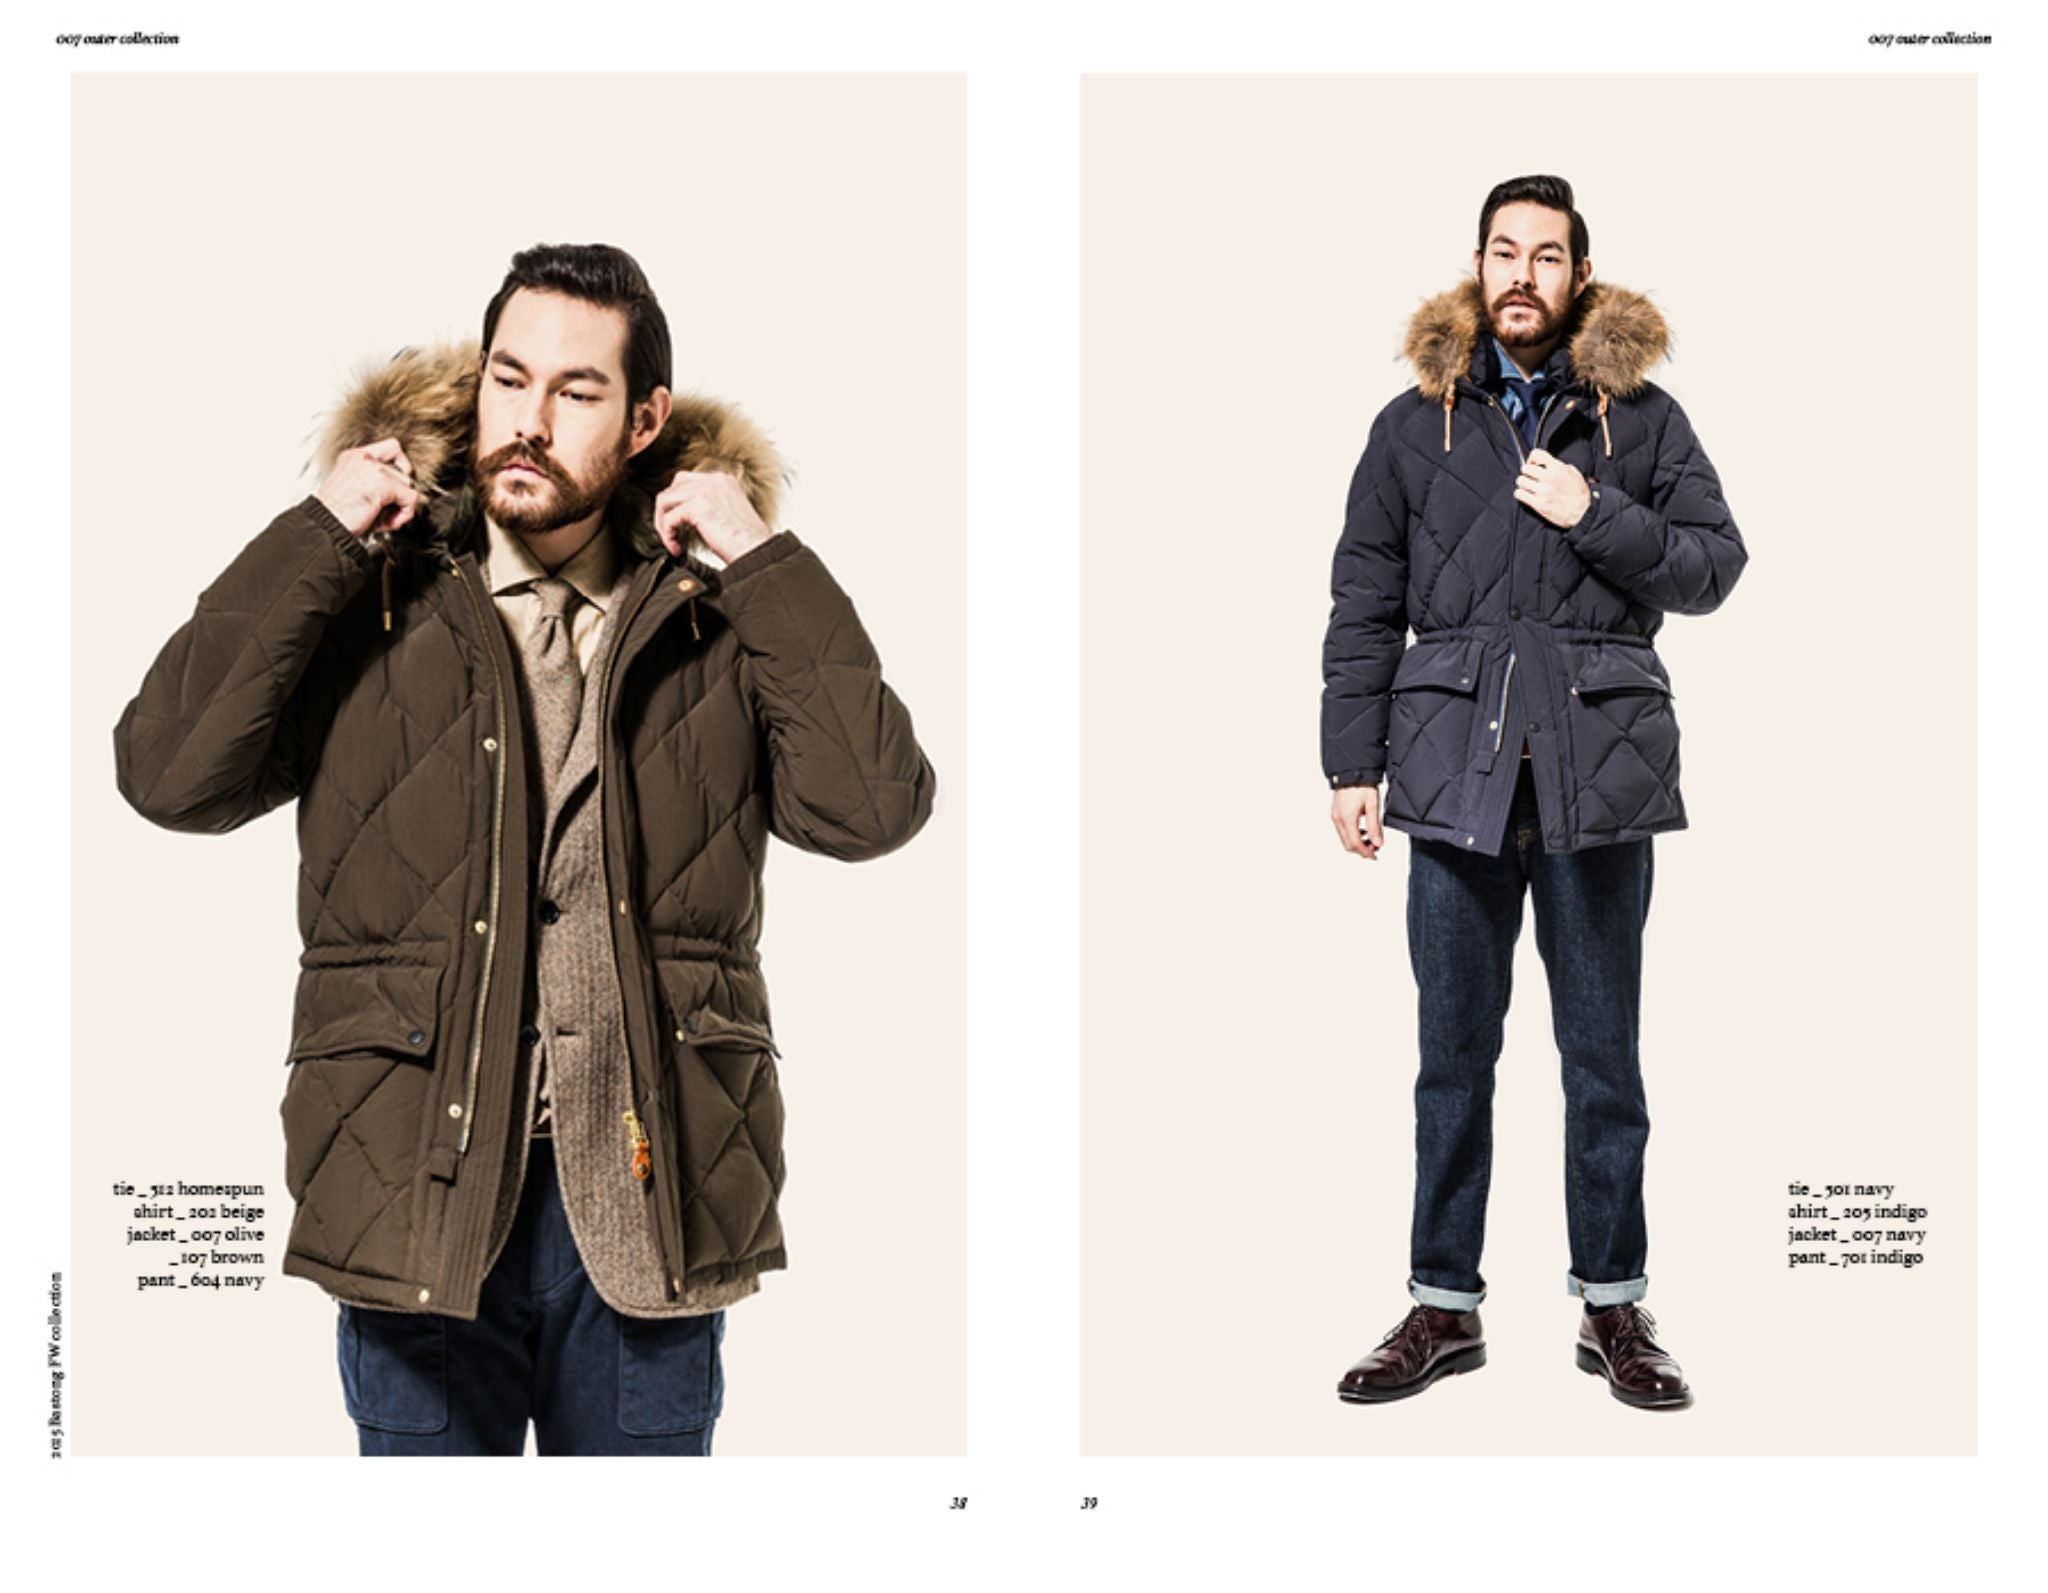 Bastong fw15 lookbook - down parka jacket for winter